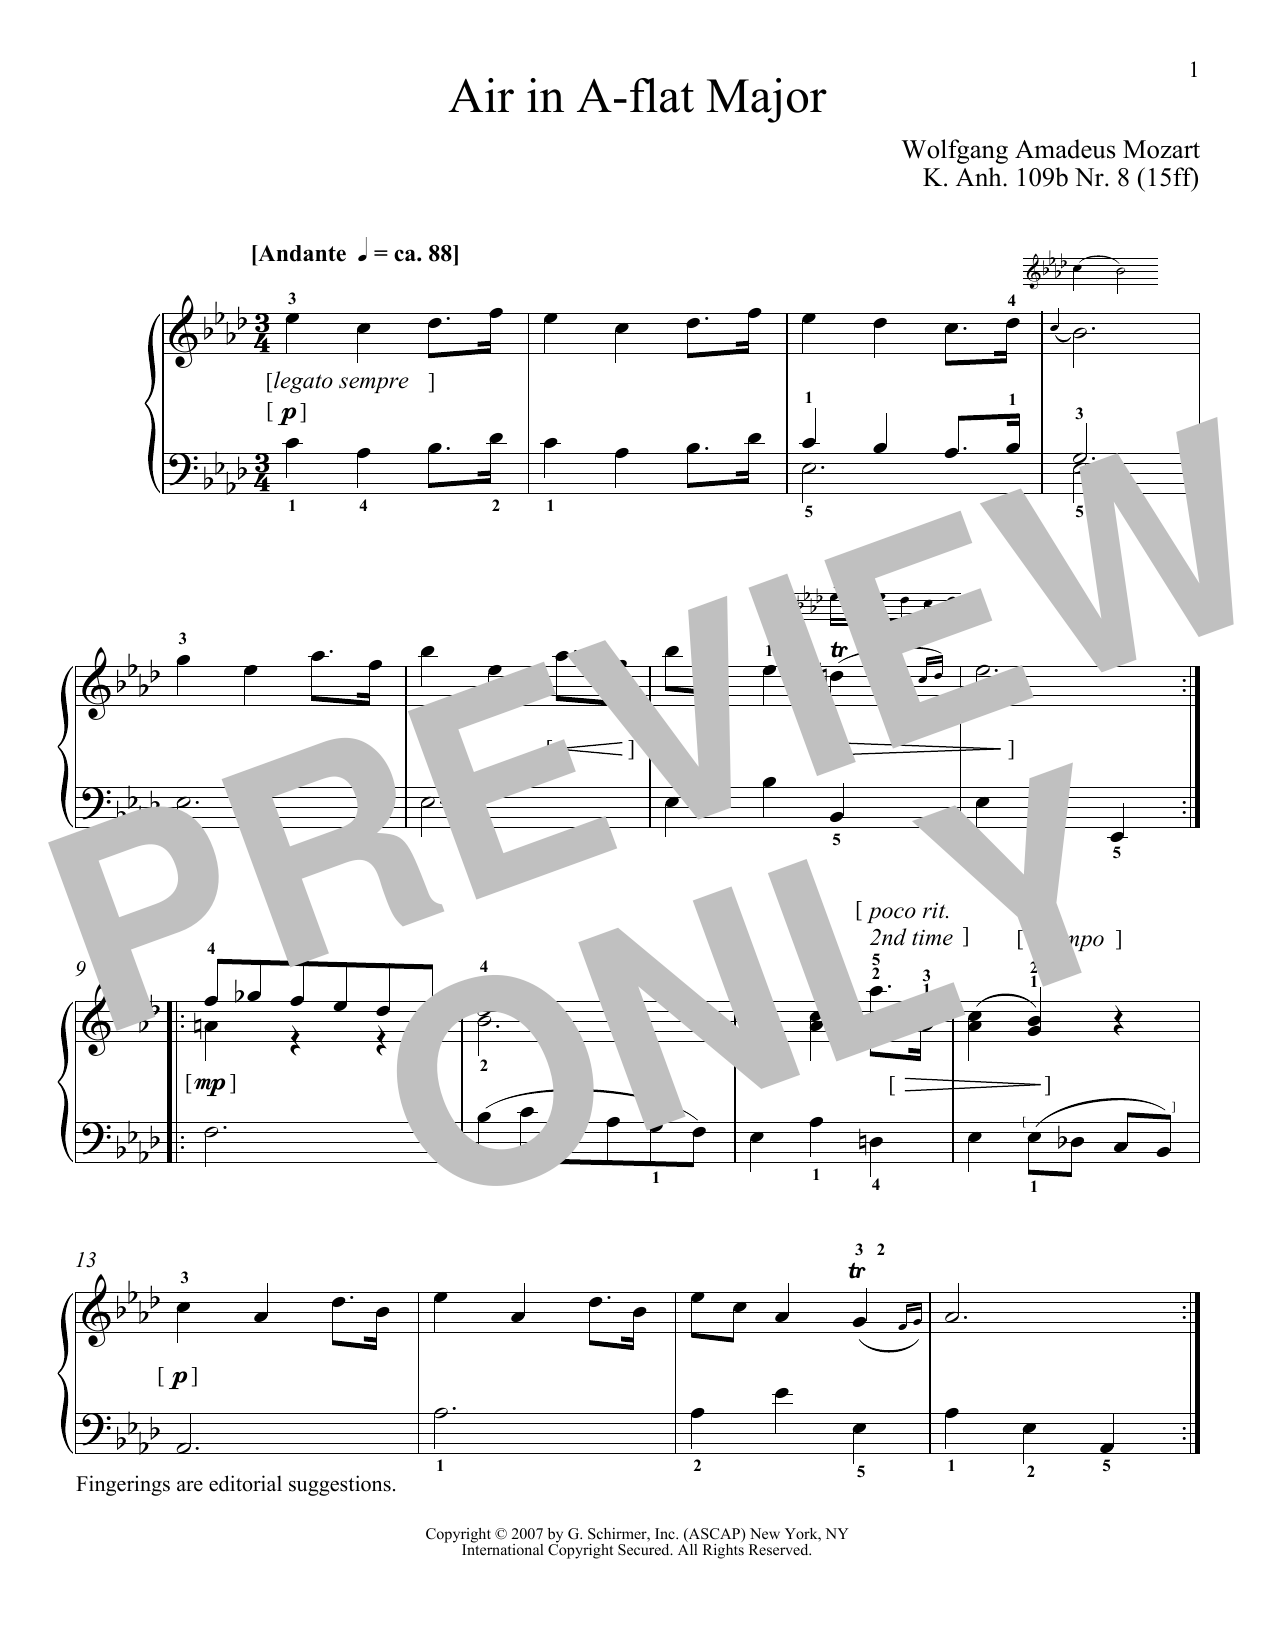 Download Wolfgang Amadeus Mozart 'Air In A-Flat Major, K109b, No. 8' Digital Sheet Music Notes & Chords and start playing in minutes